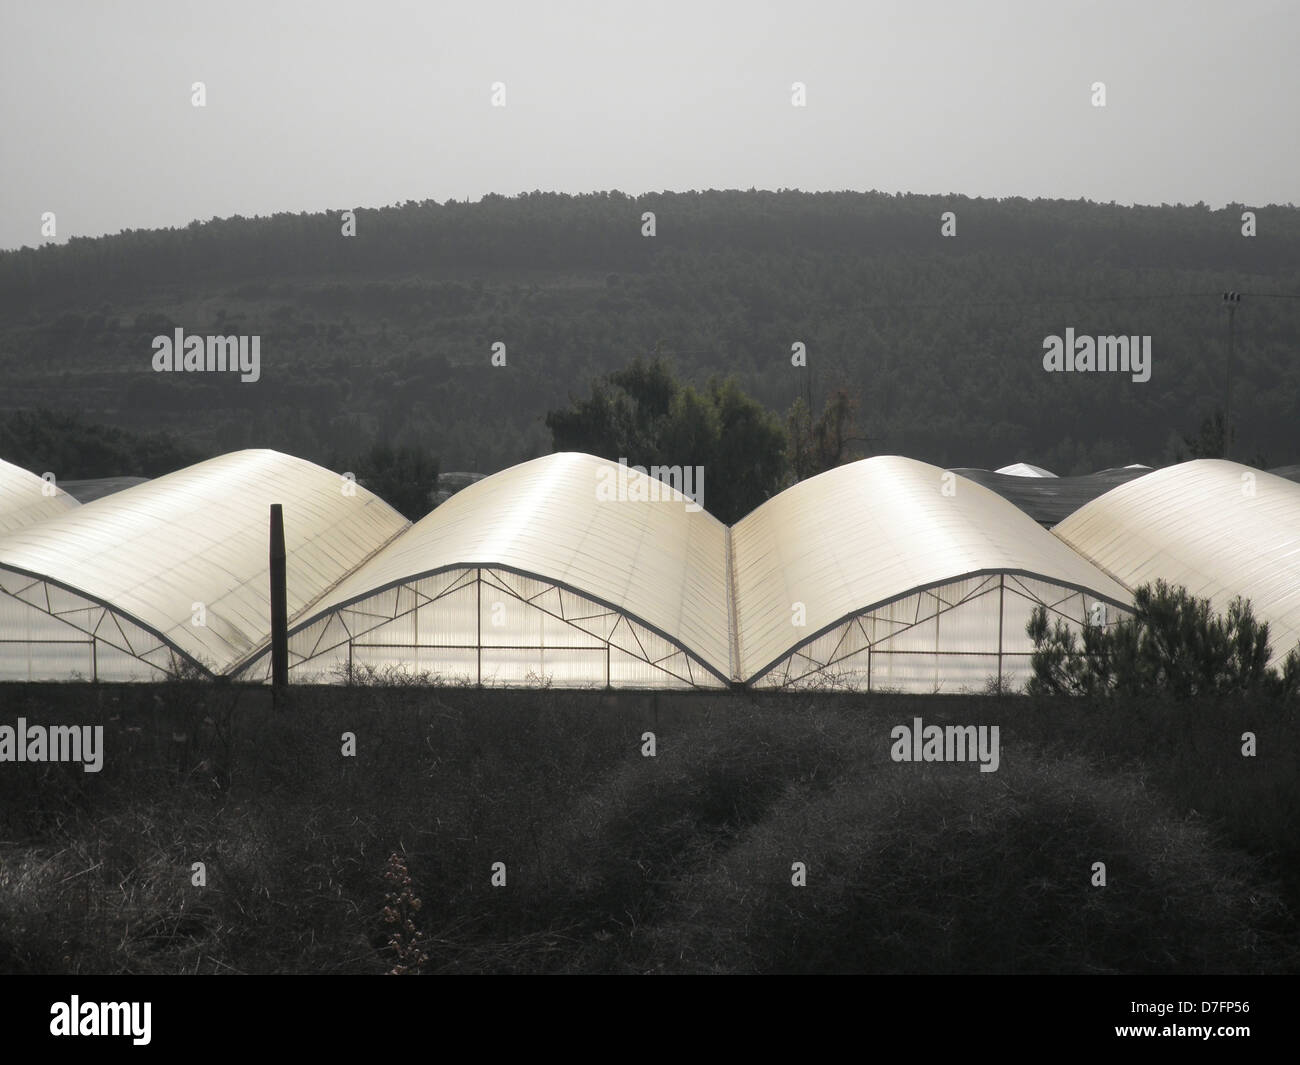 Greenhouses in Mei Ami, cooperative settlement near Wadi Ara, Israel - Stock Image